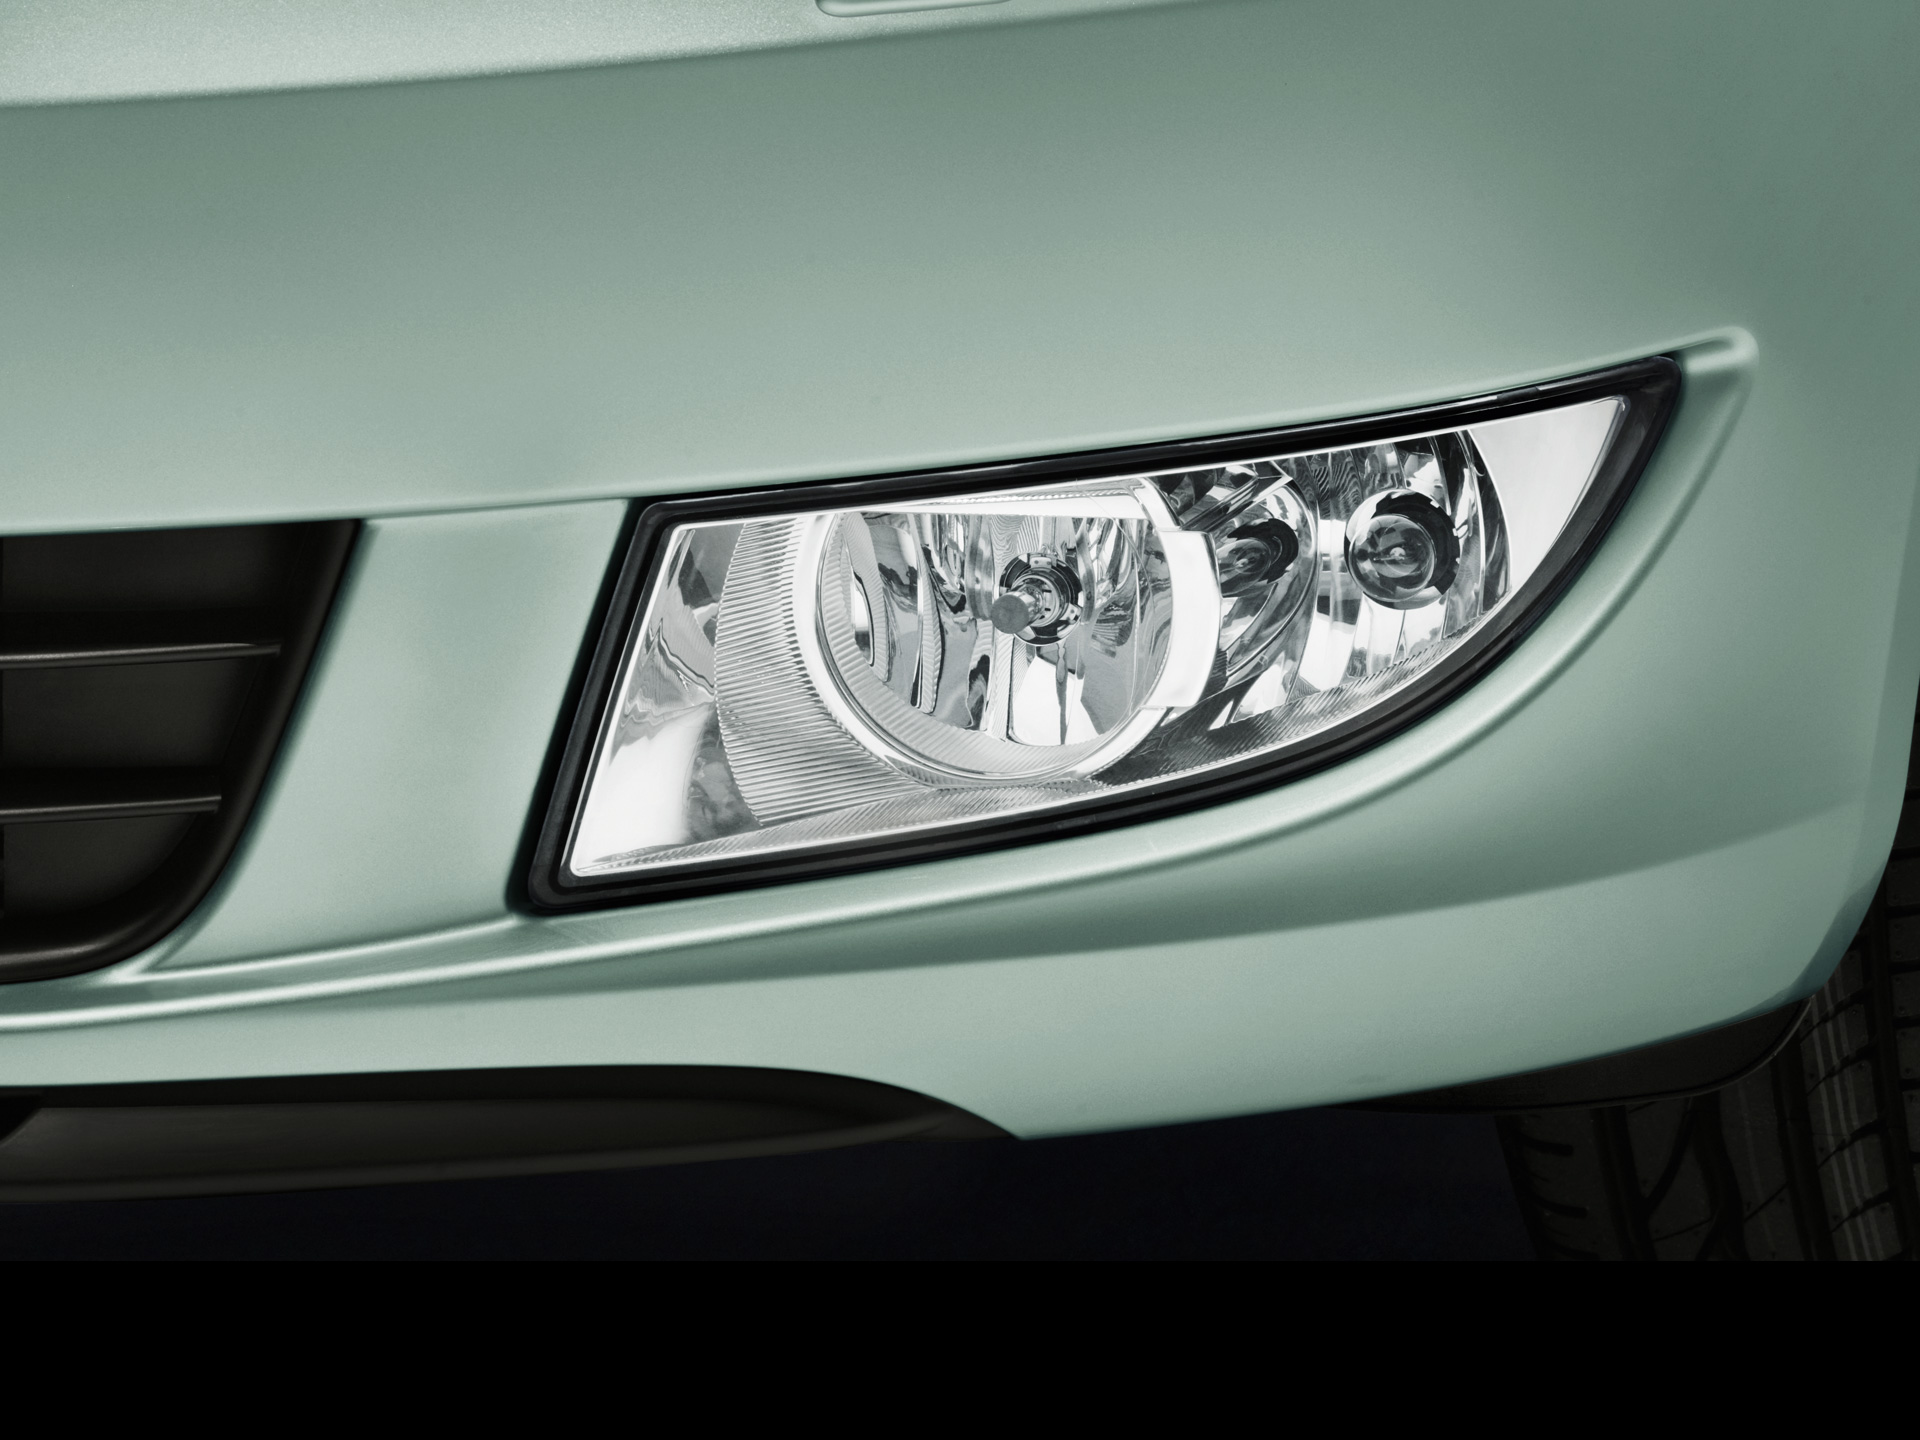 ŠKODA Fabia front fog headlamps with Corner function